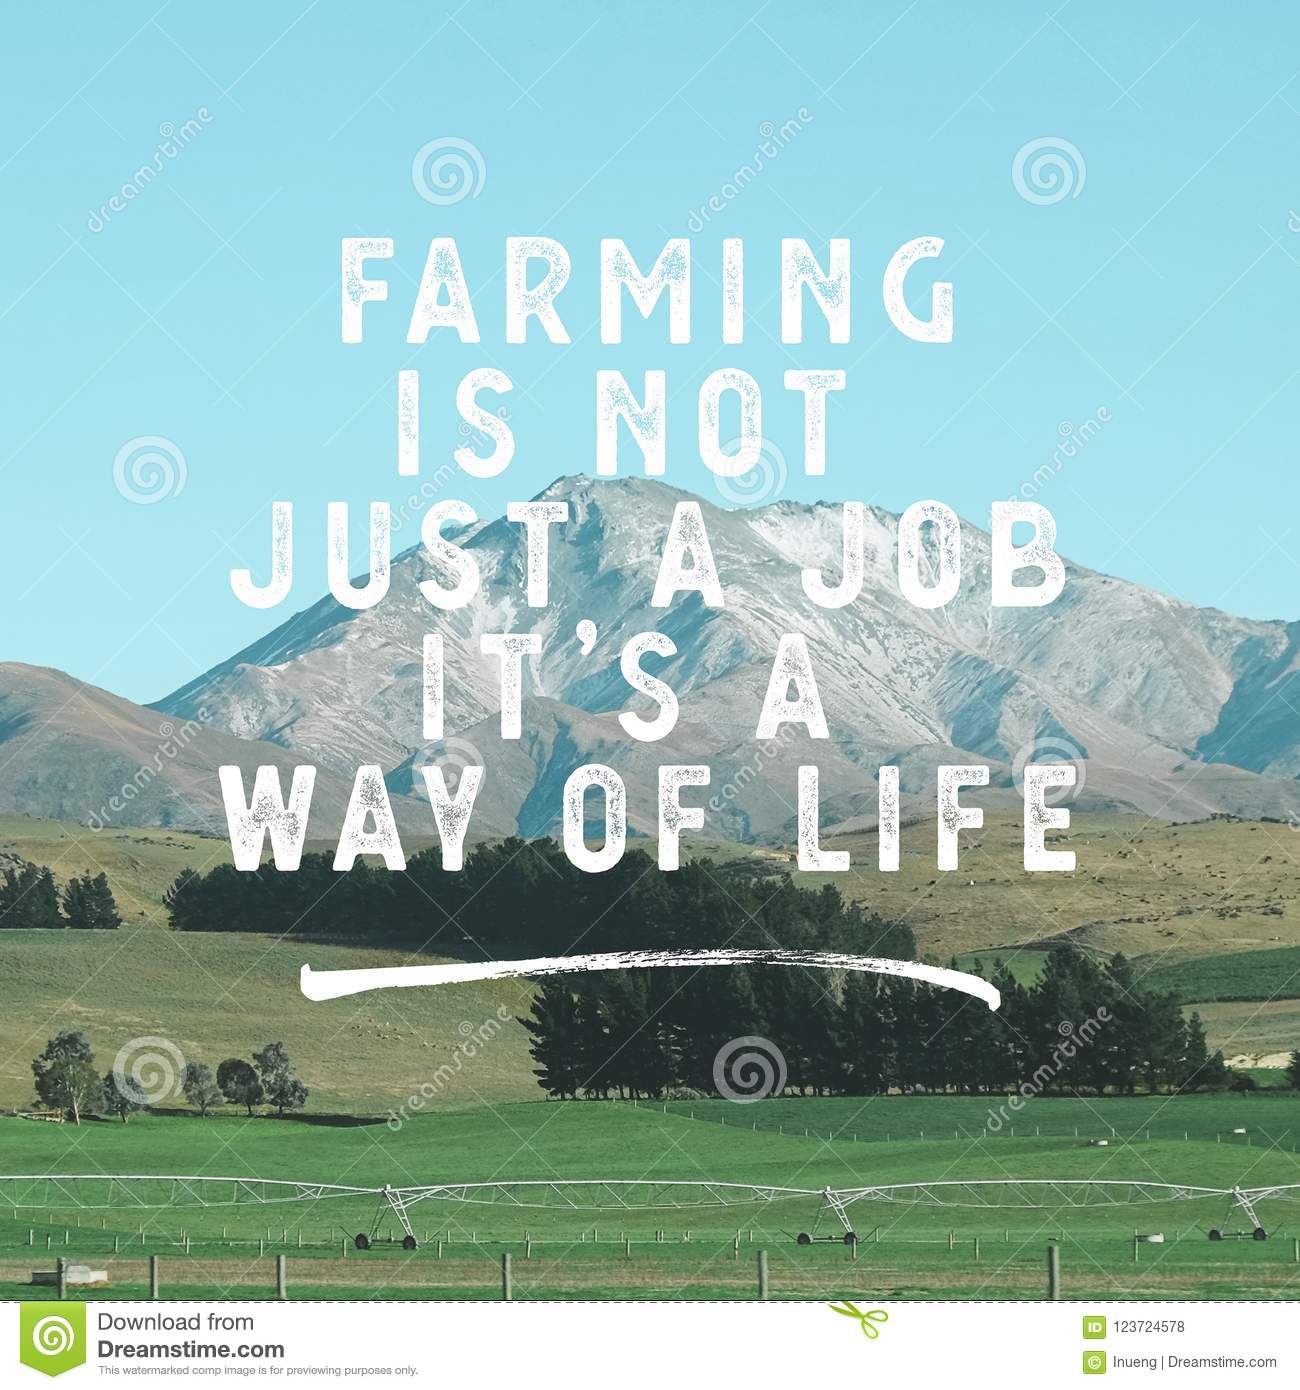 Inspirational Agricultural Quotes Farming Is Not A Job Its A Way